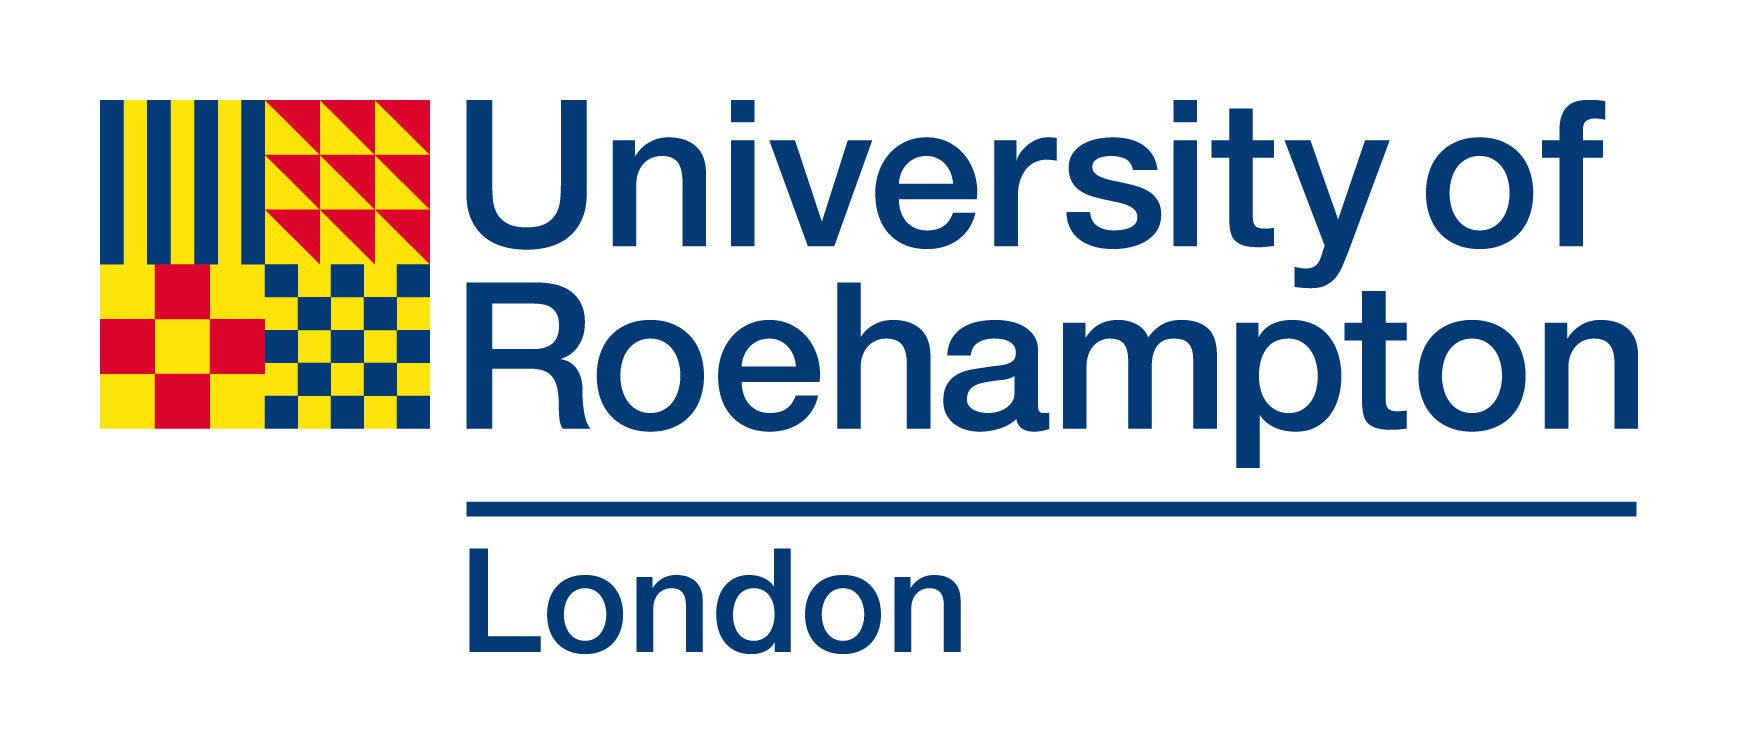 RSU Summer Ball Live Event Video (2014) University-of-Roehampton-Logo-Colour-jpeg